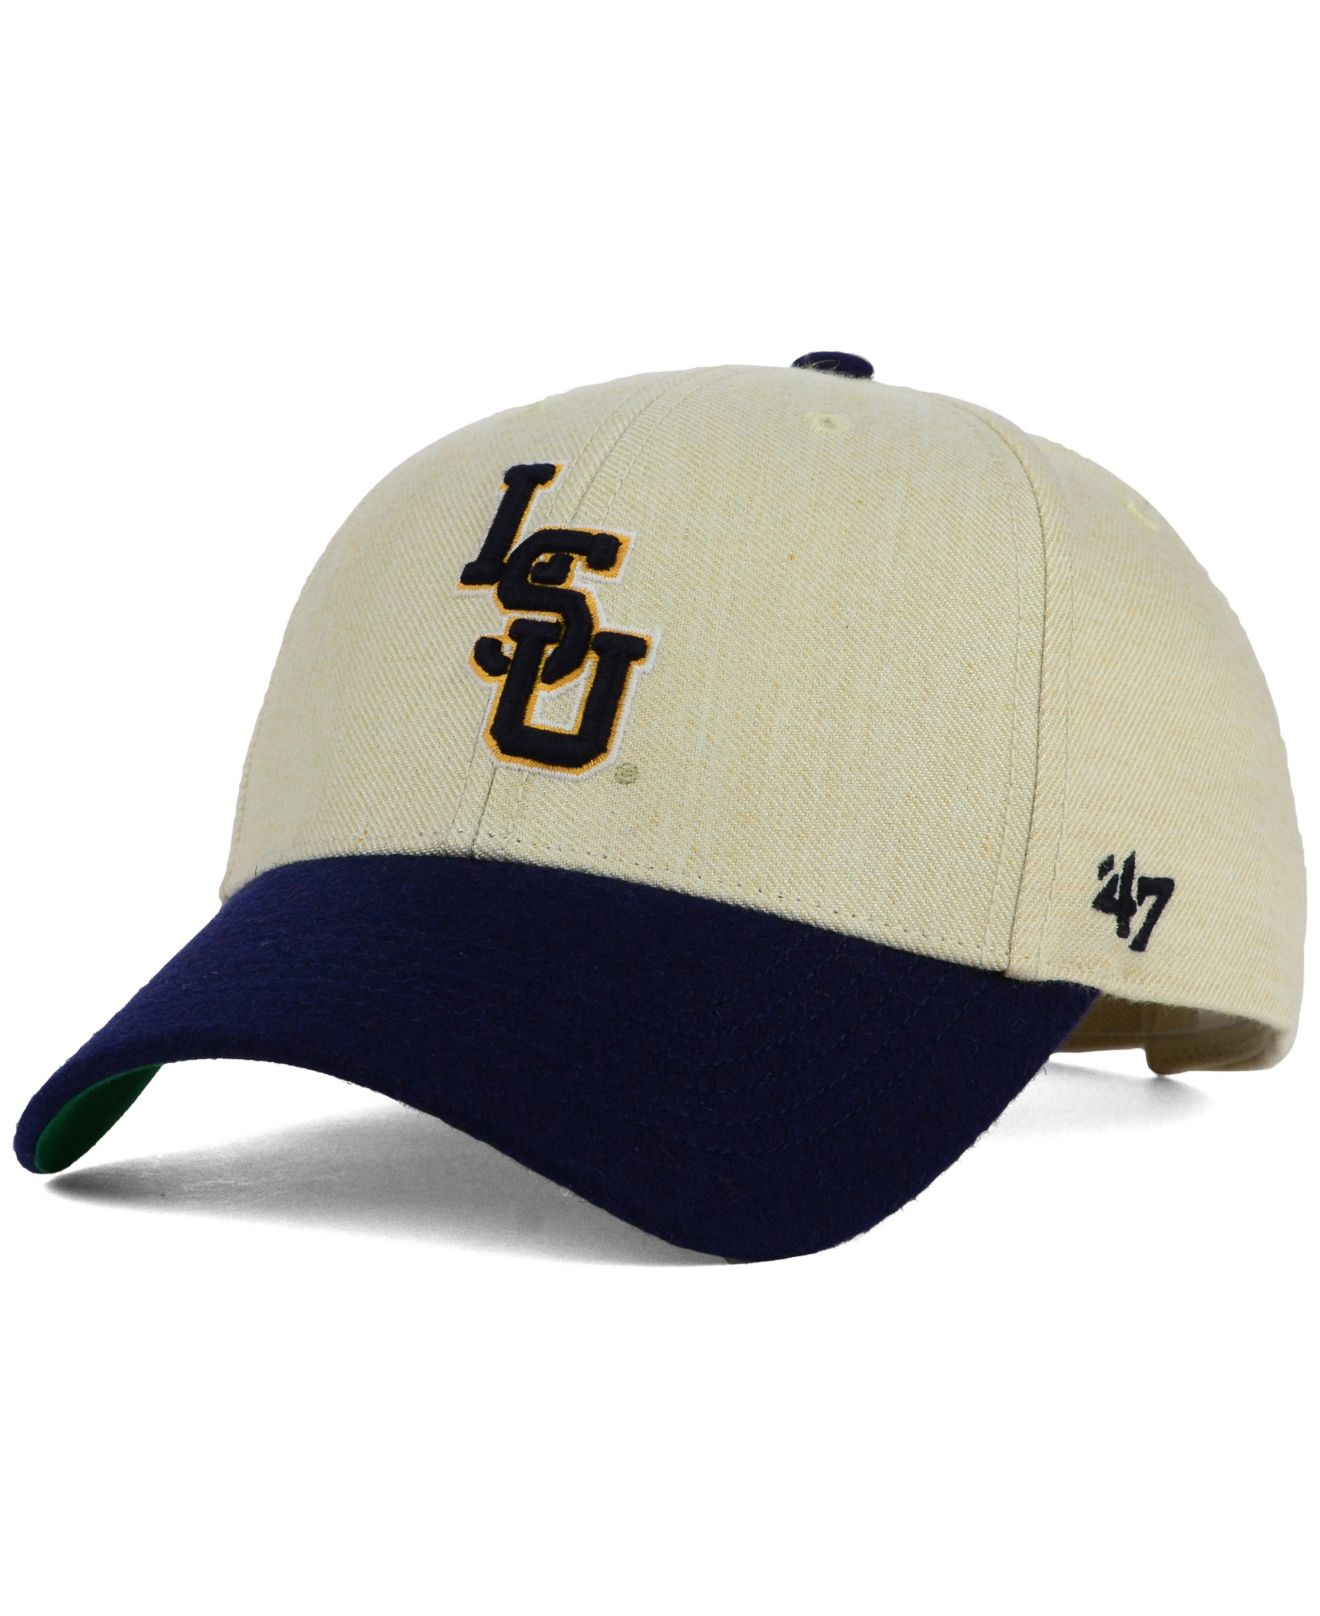 low cost 95bc1 7b3ec ... adjustable hat purple ebcf3 6c1e5  where to buy lyst 47 brand lsu  tigers munson mvp cap in natural for men 81ccc